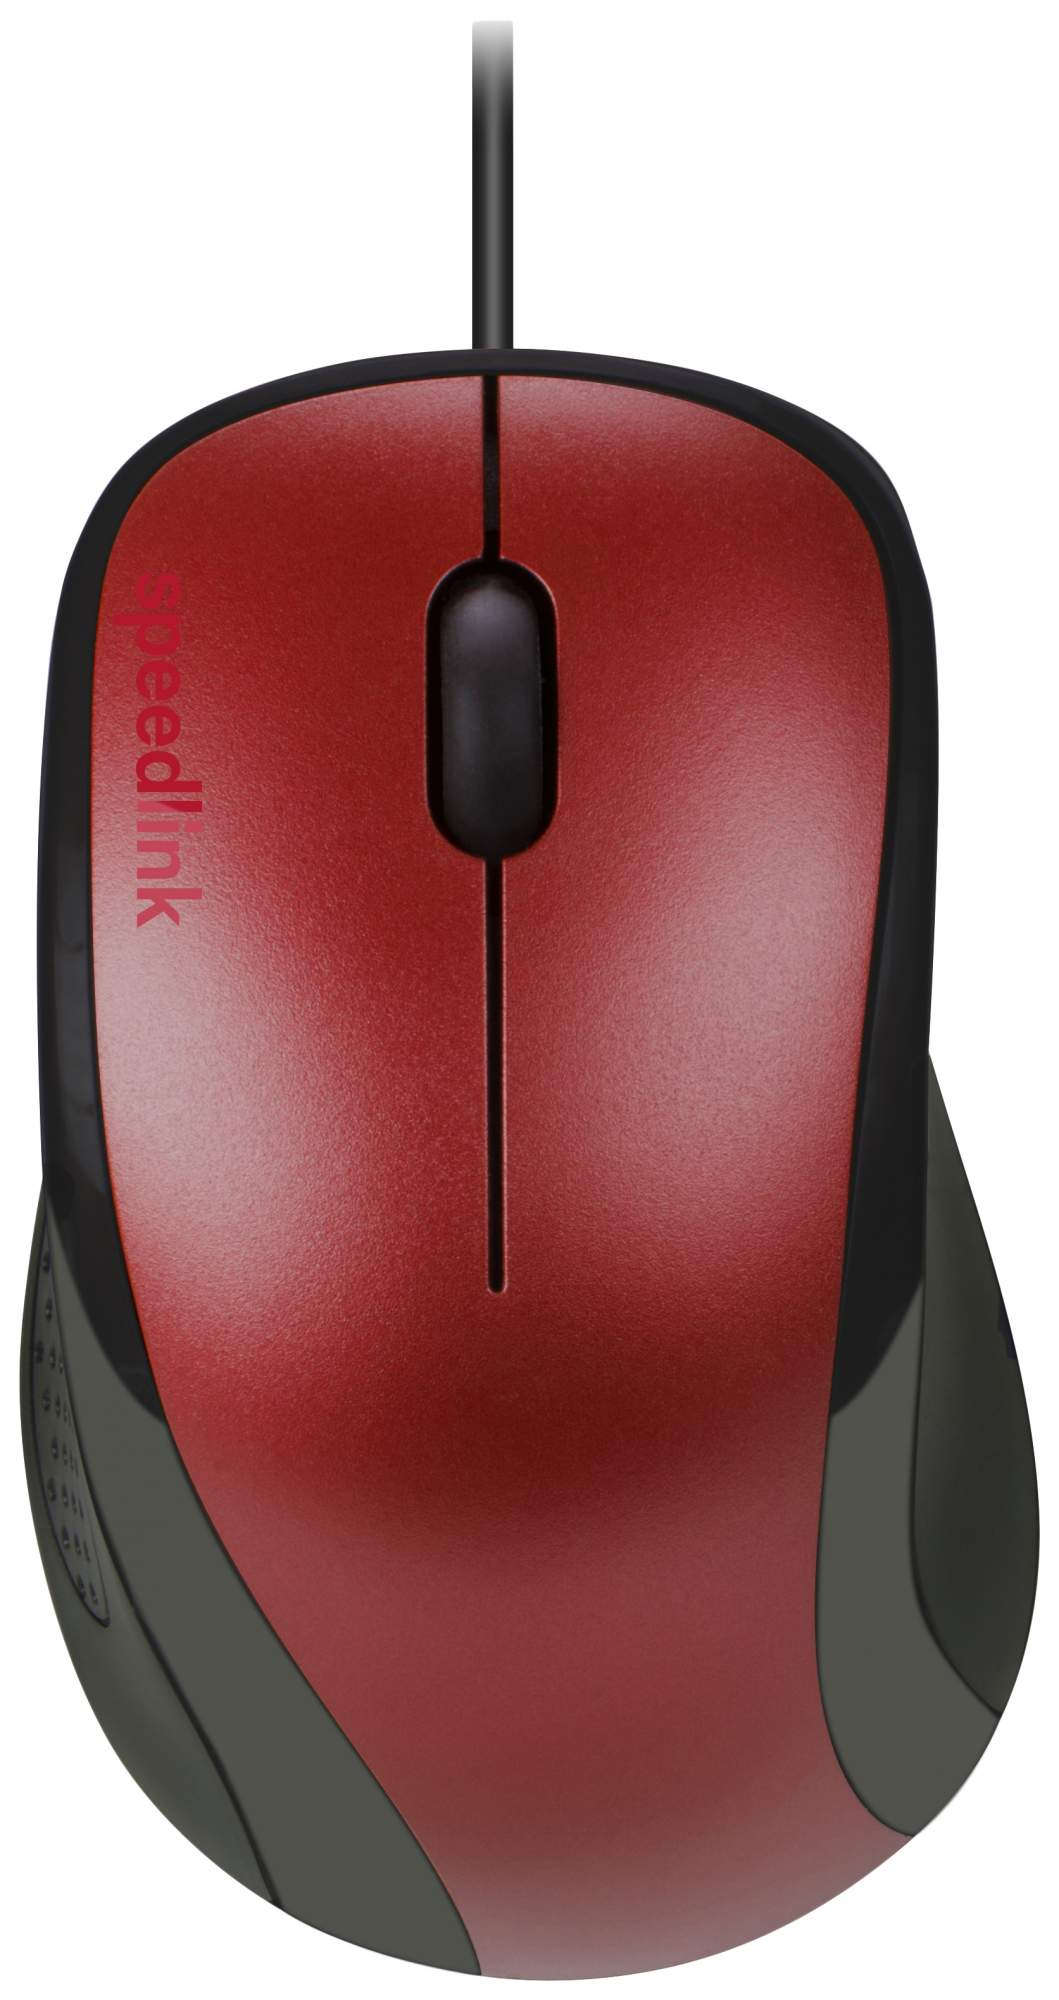 Проводная мышка SPEED-LINK Kappa Red/Black (SL-610011-RD)